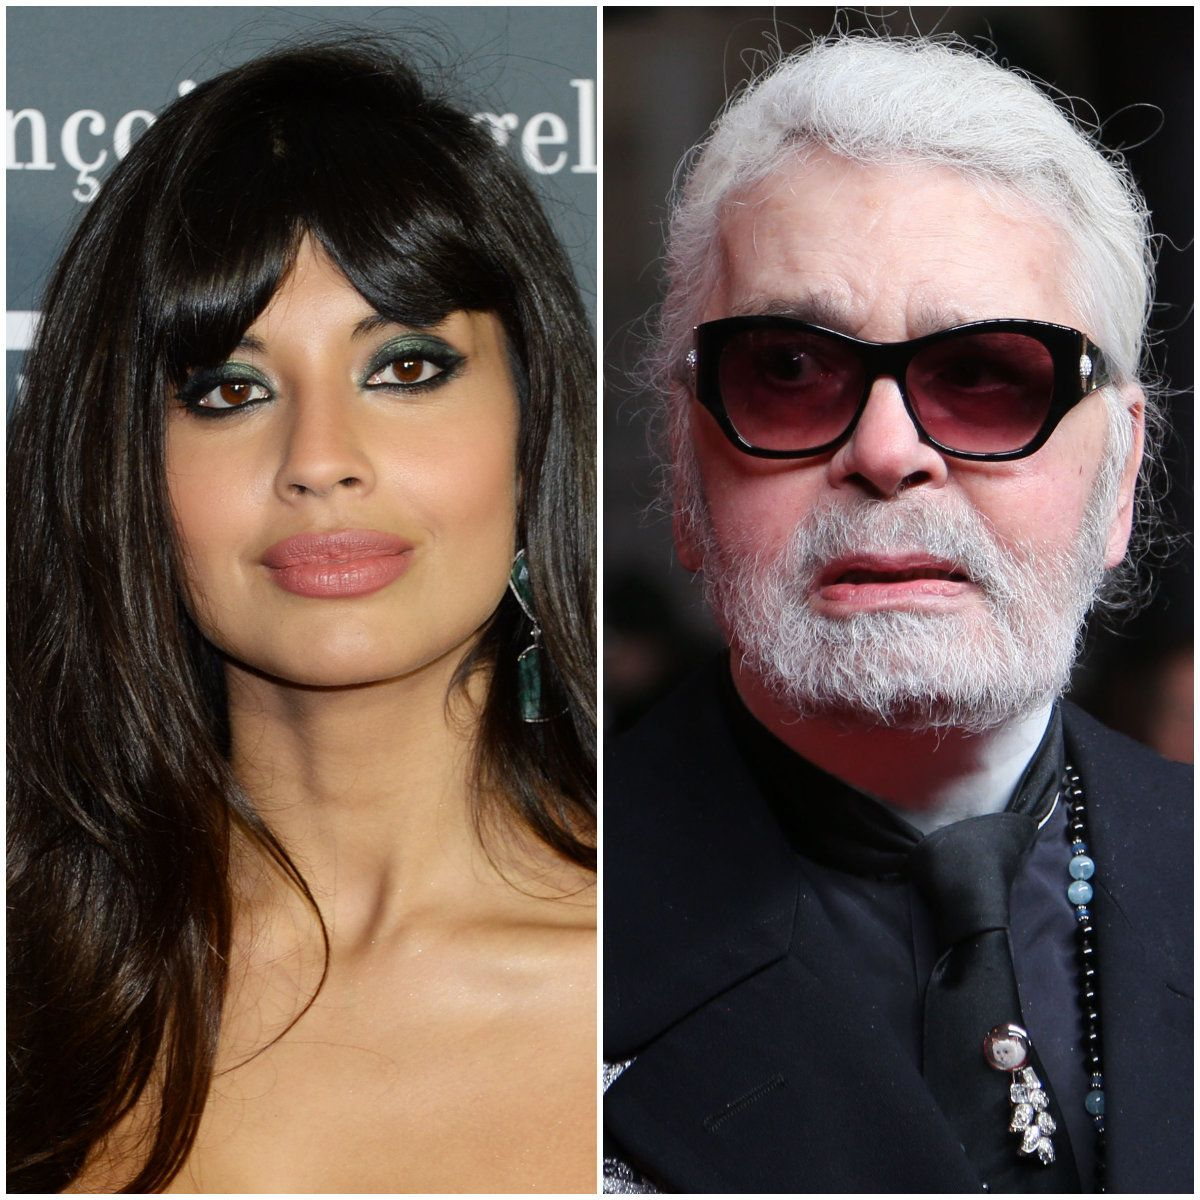 PULLING NO PUNCHES: Jameela Jamil Labels Karl Lagerfeld A 'Fat-Phobic Misogynist' Following The Chanel Designer's